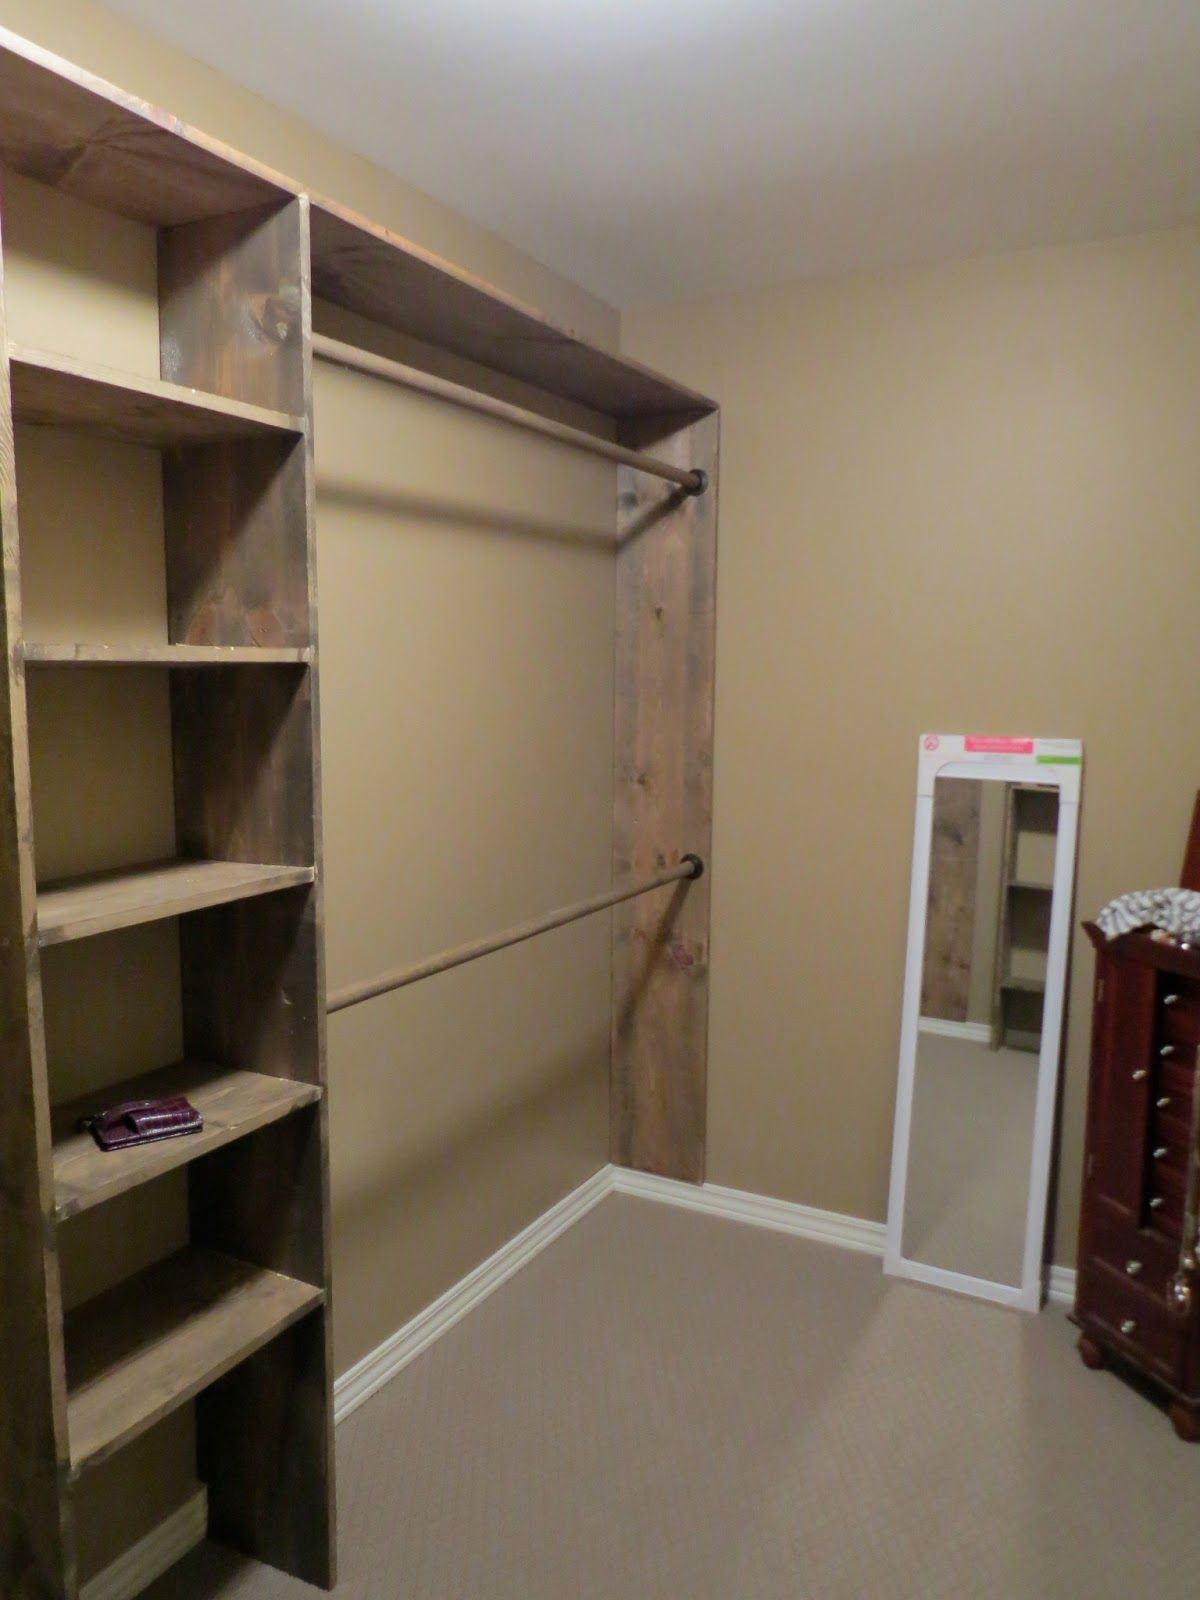 Walk In Closets: No More Living Out Of Laundry Baskets!